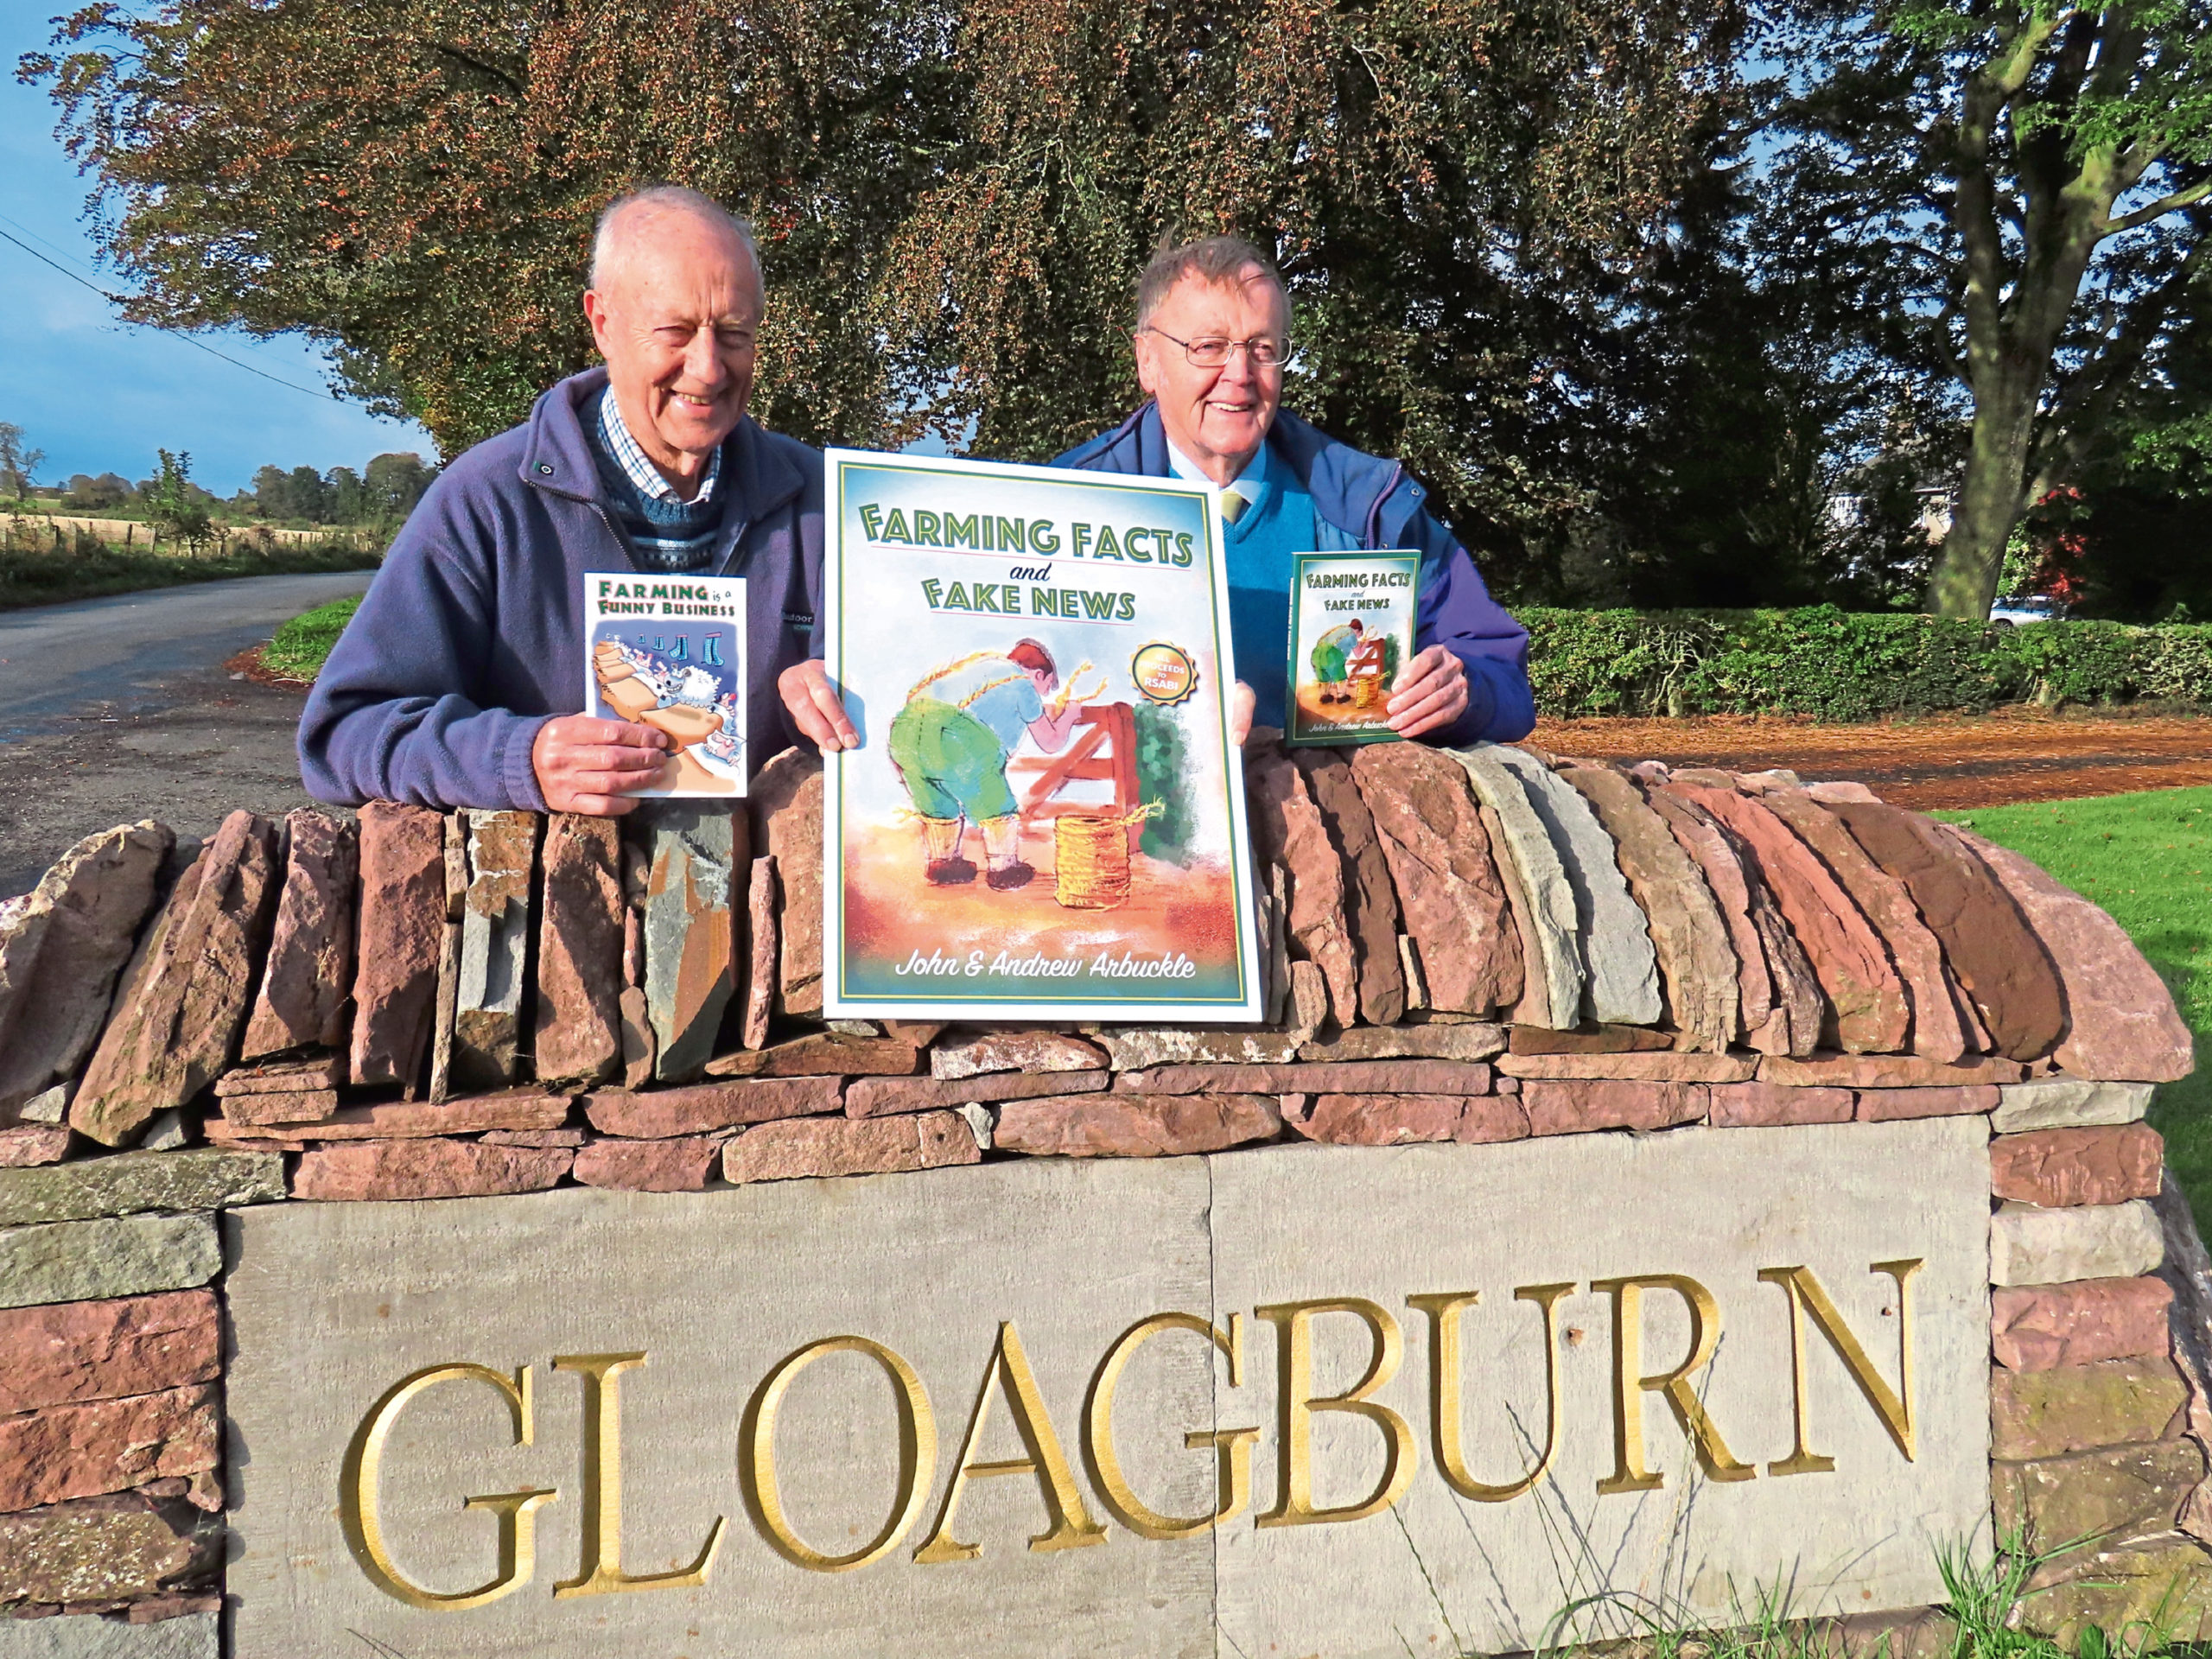 Books by John, left, and Andrew Arbuckle have collectively raised more than £72,000 for agricultural charity RSABI.